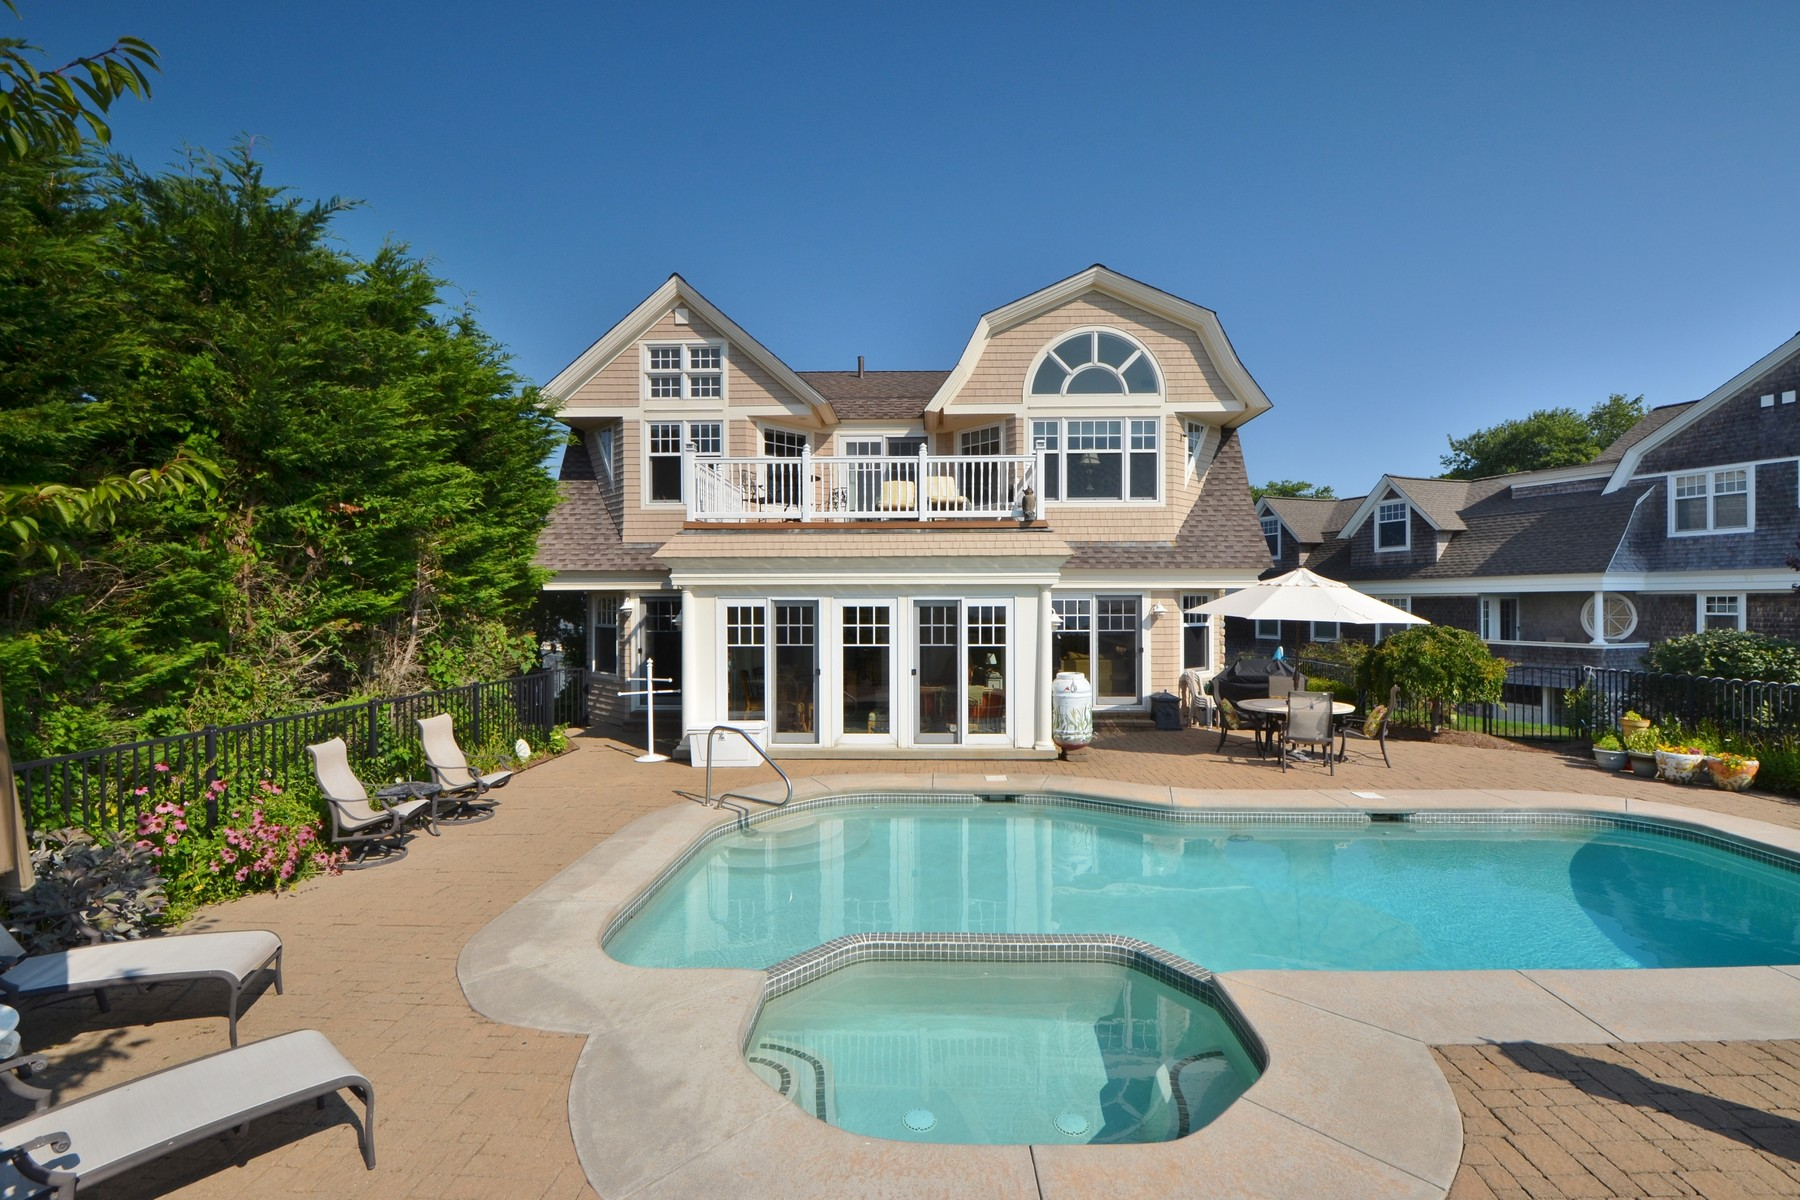 Vivienda unifamiliar por un Venta en Direct Waterfront Home Overlooks Long Island Sound 10 Billow Rd Old Saybrook, Connecticut, 06475 Estados Unidos